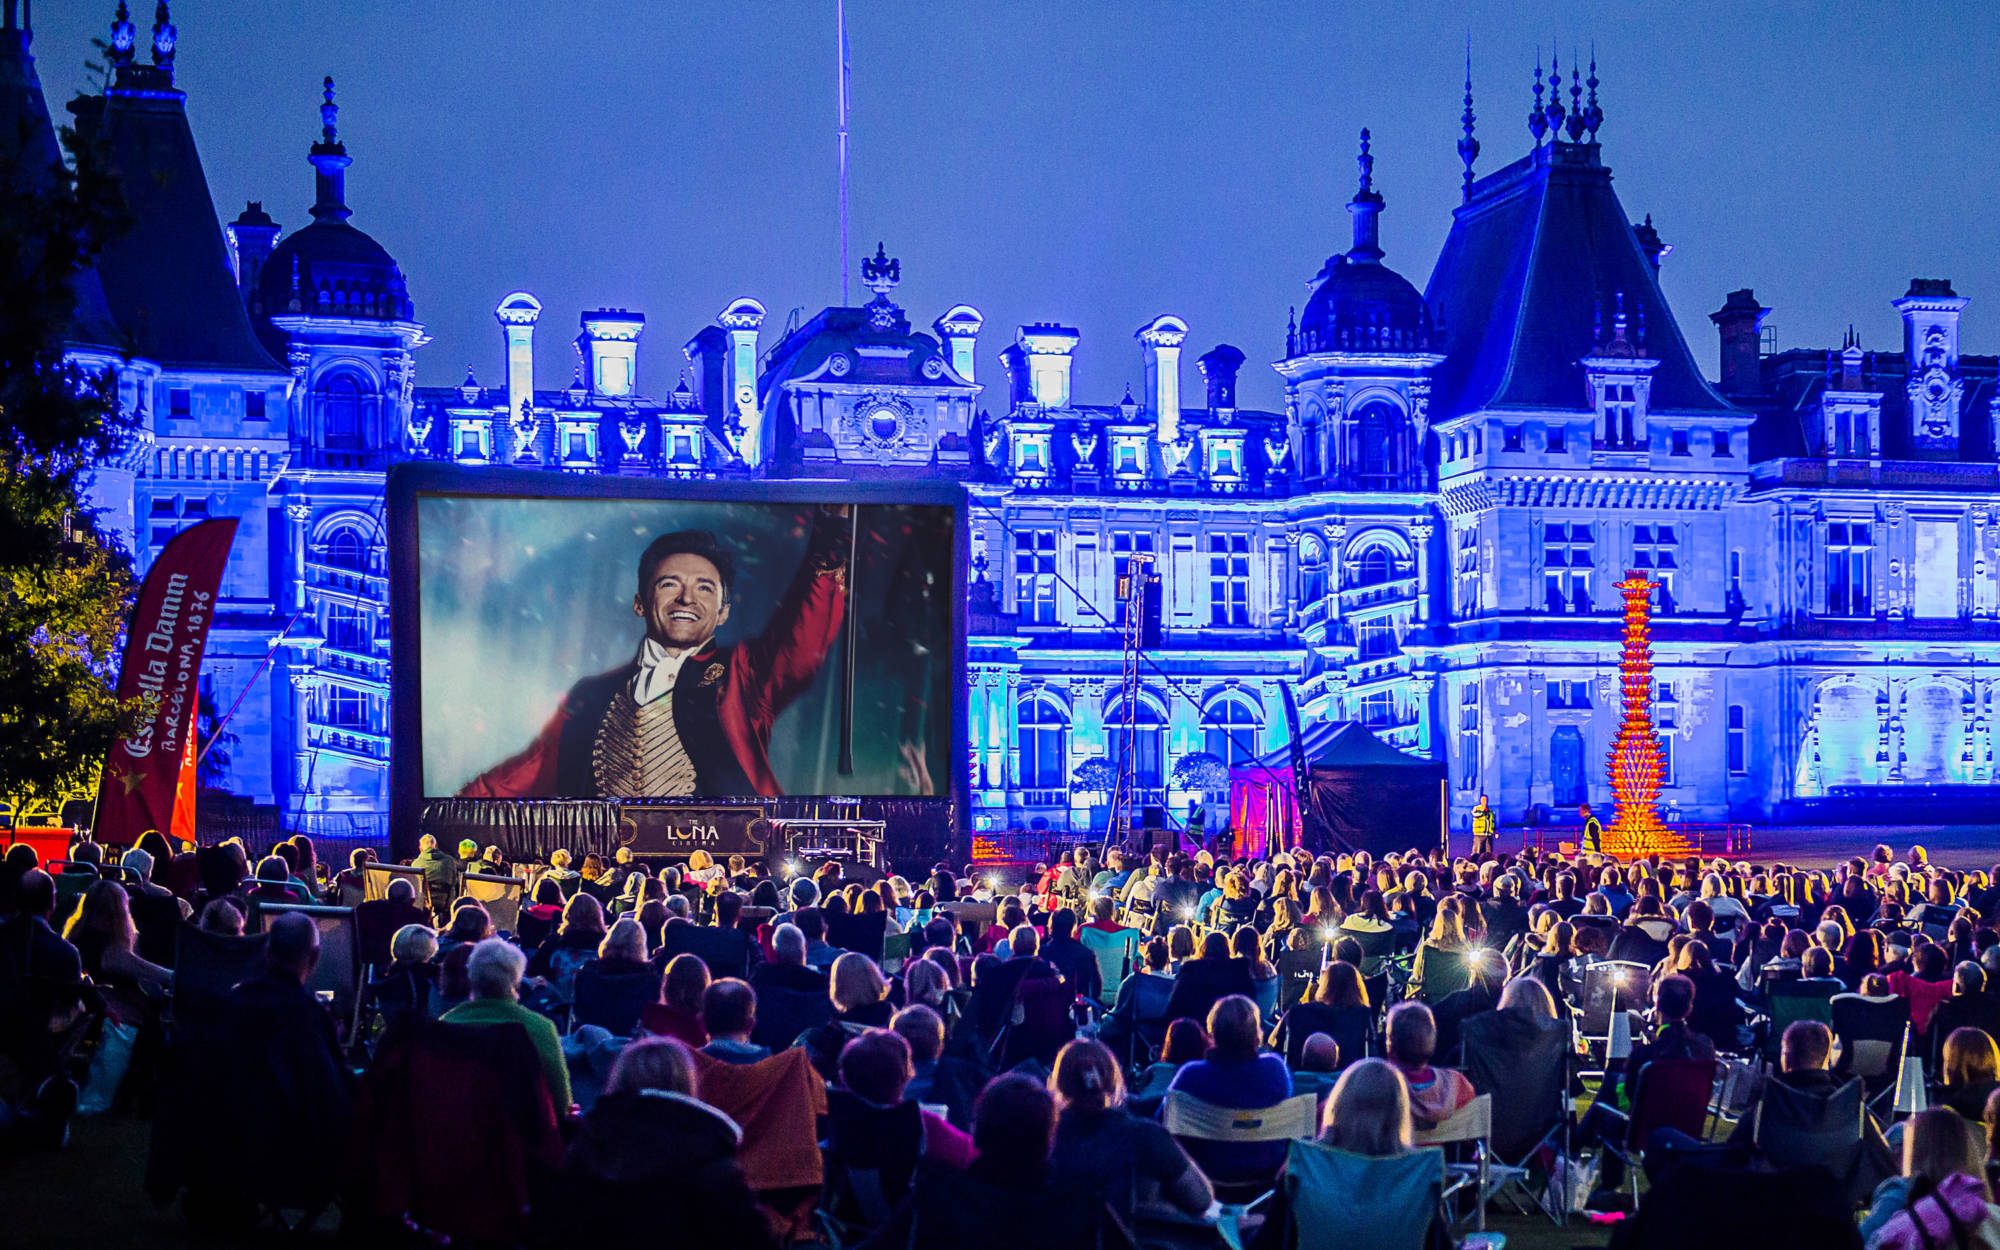 Open air cinema showing The Greatest Showman